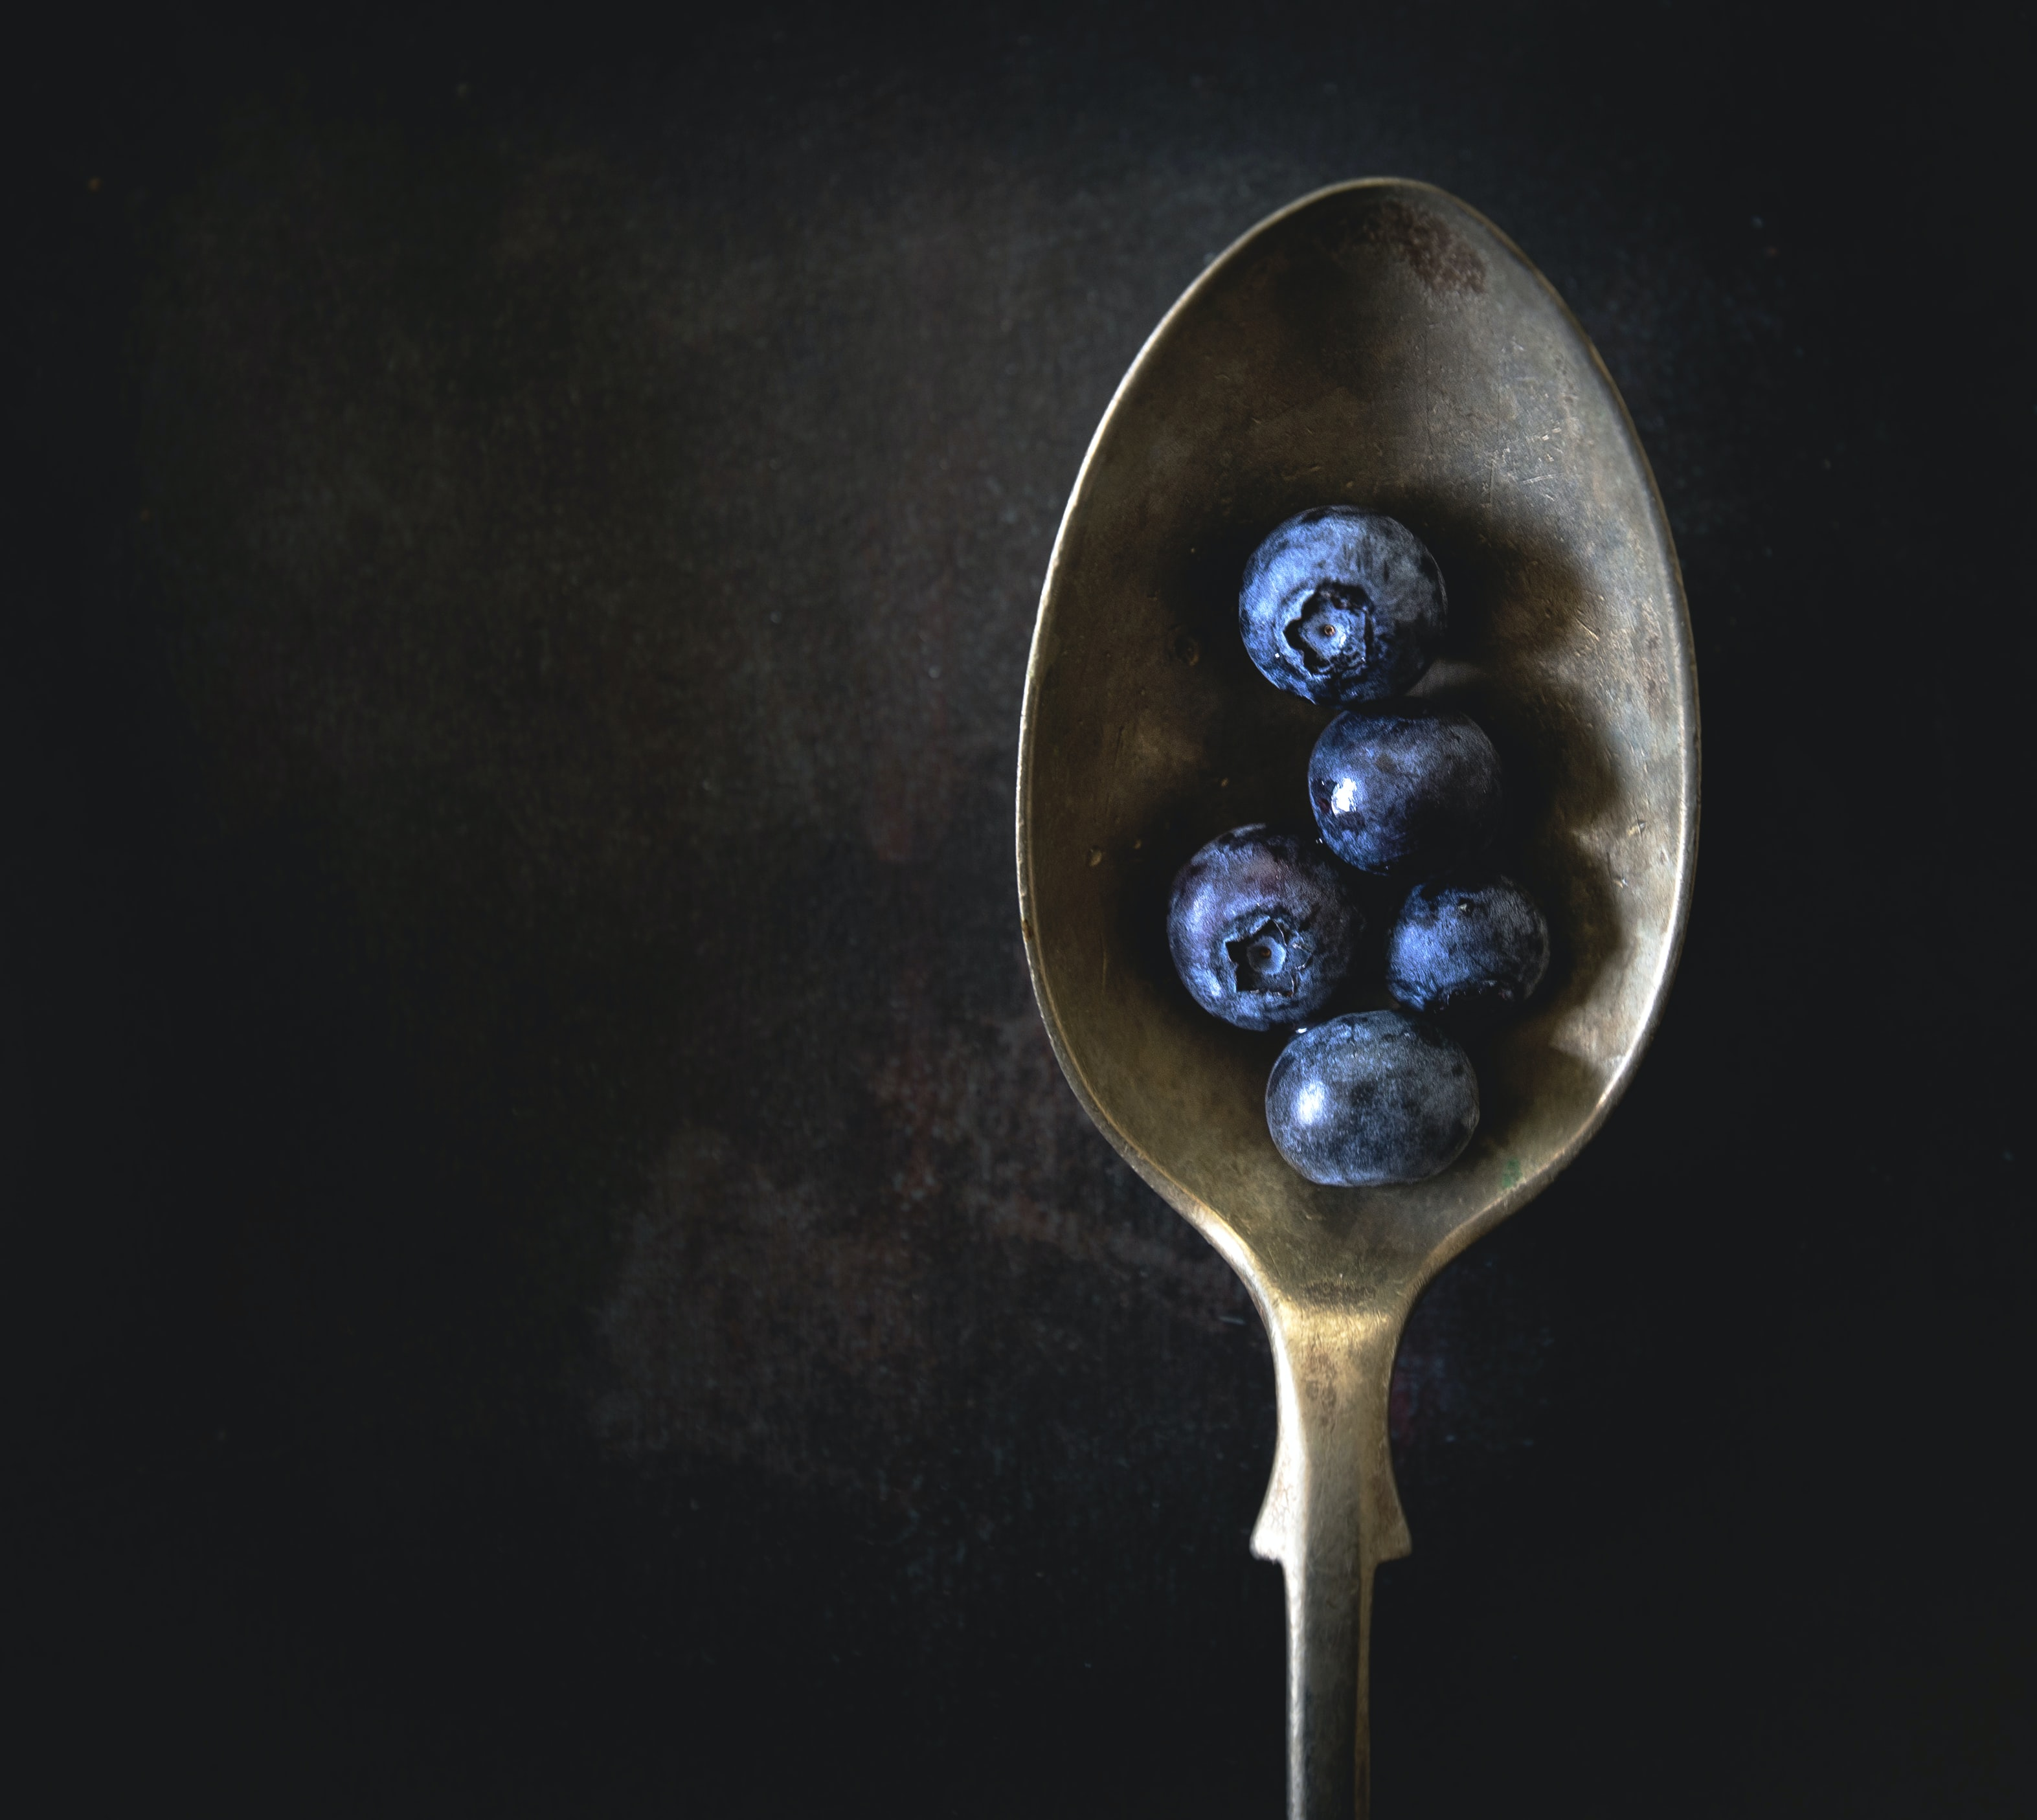 five blueberries on gold spoon